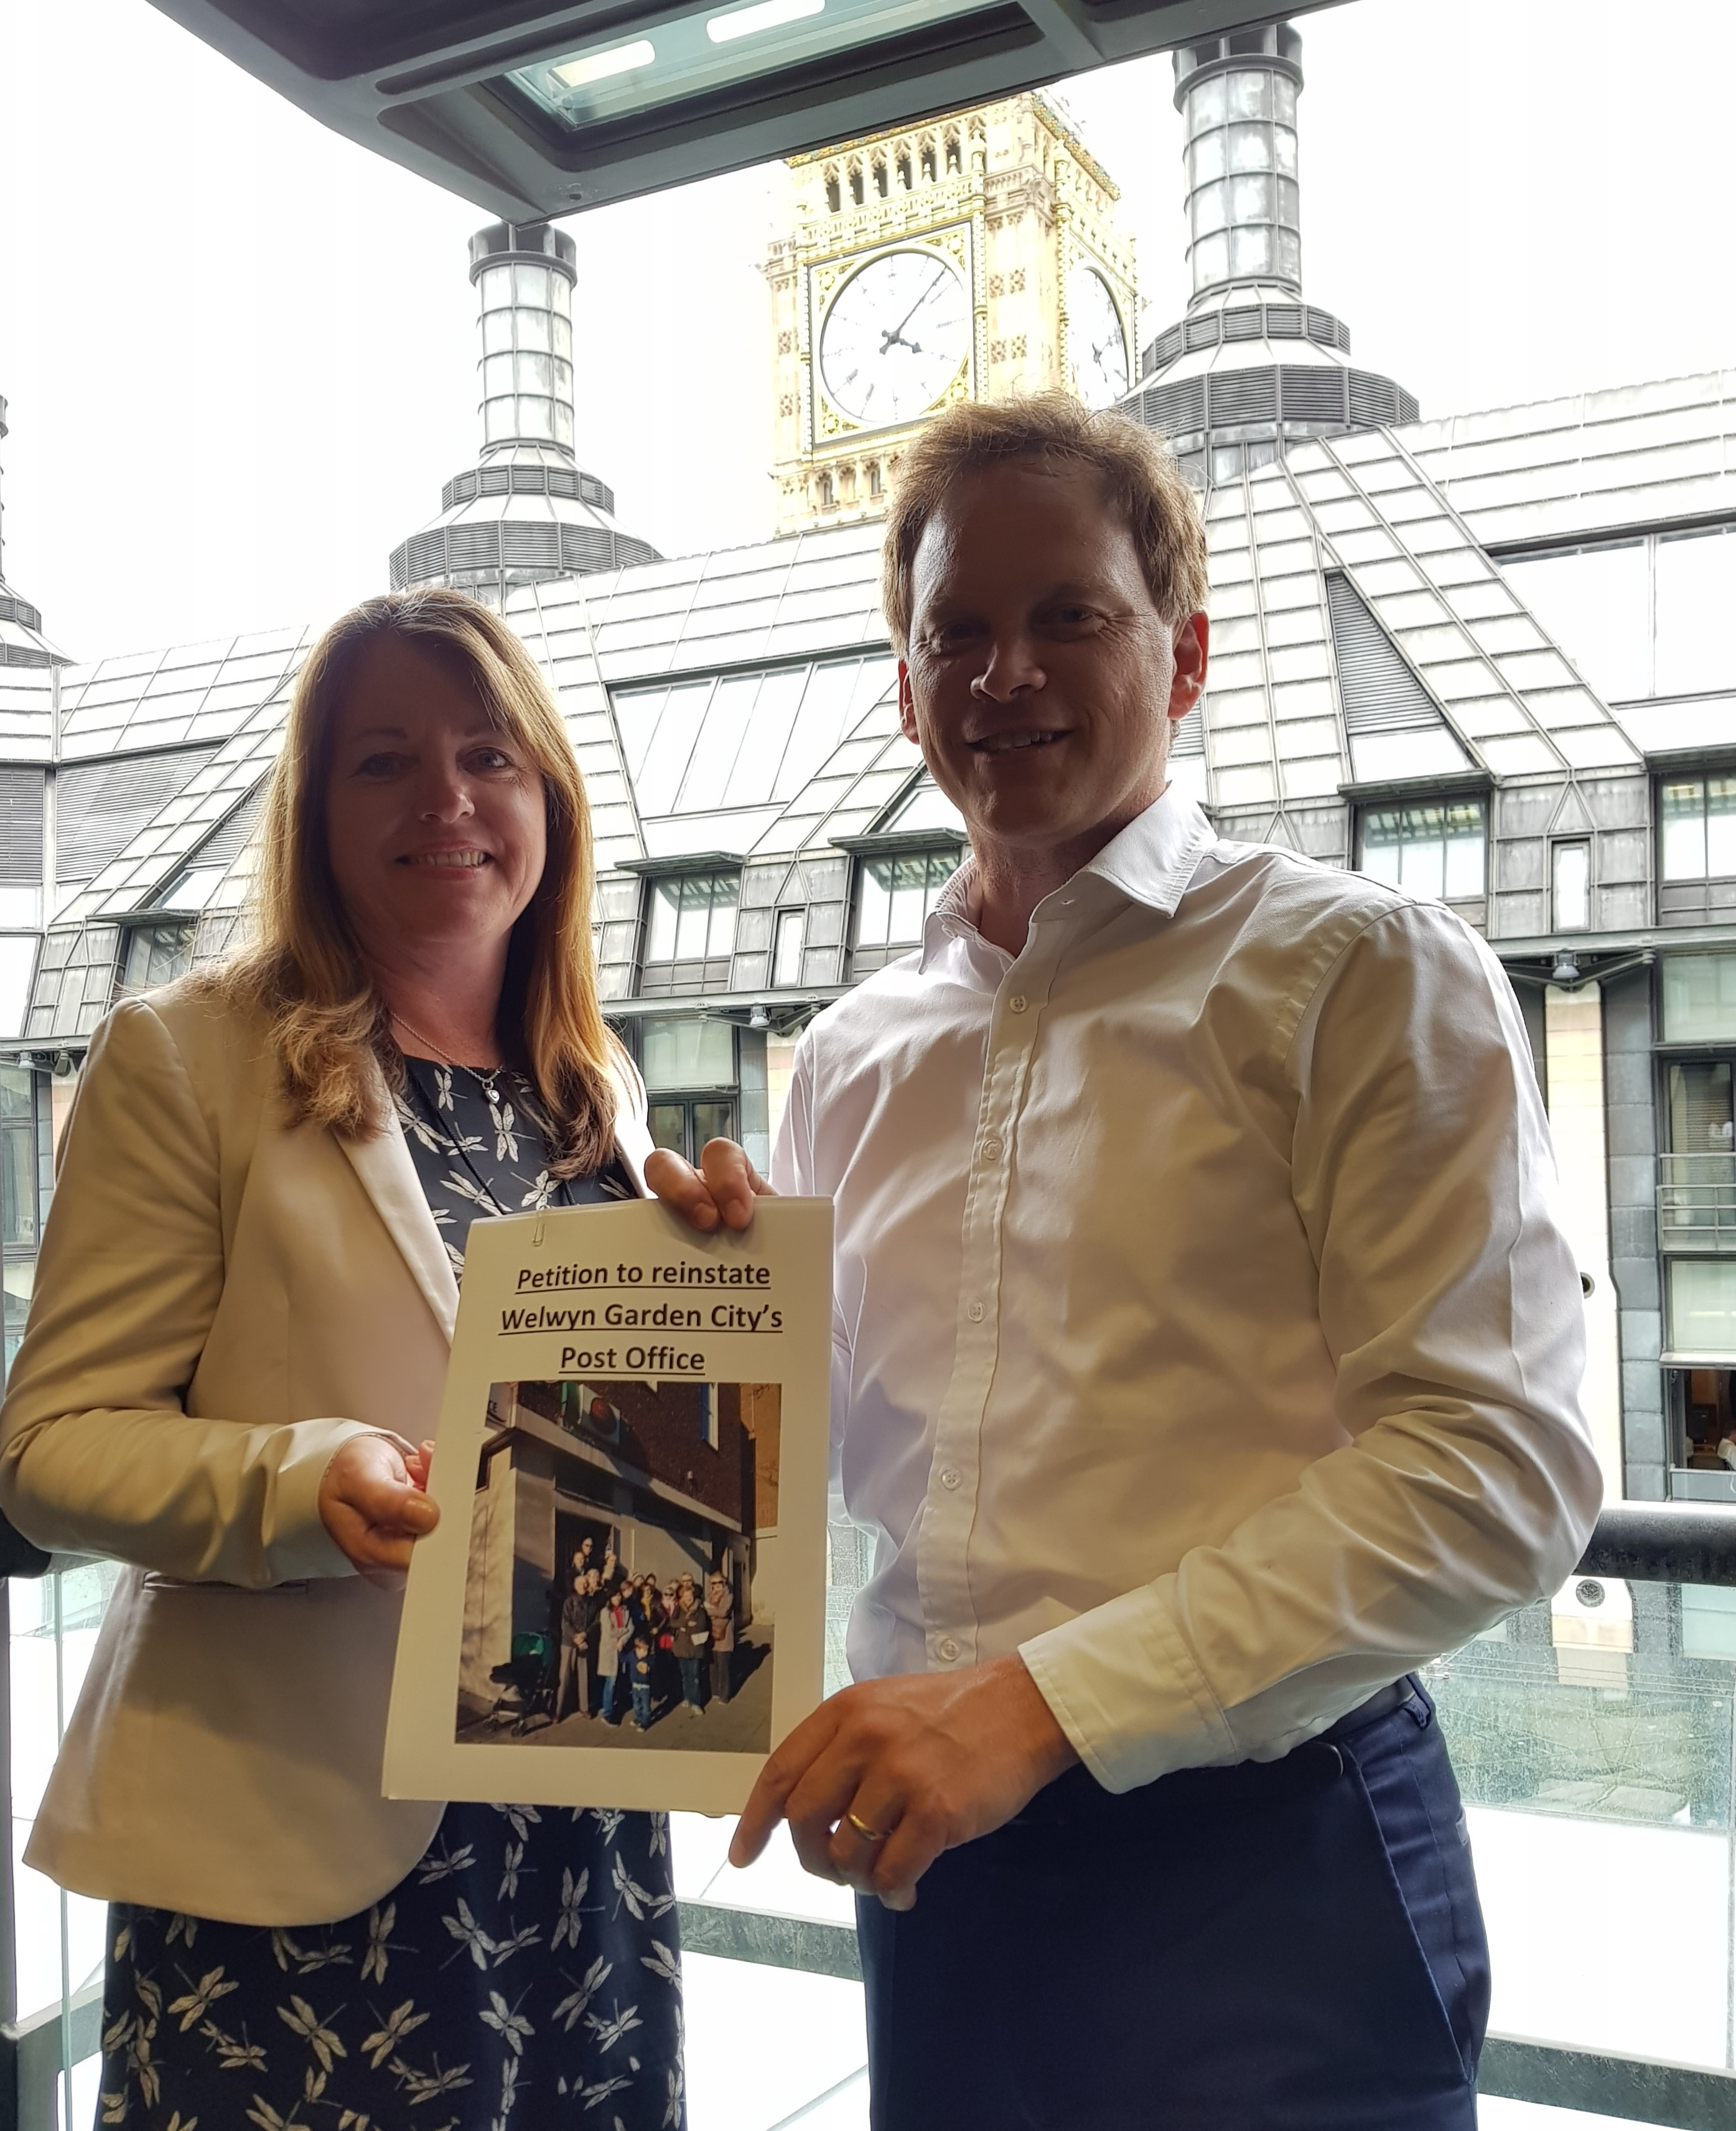 Shapps Hands Petition To Post Office The Rt Hon Grant